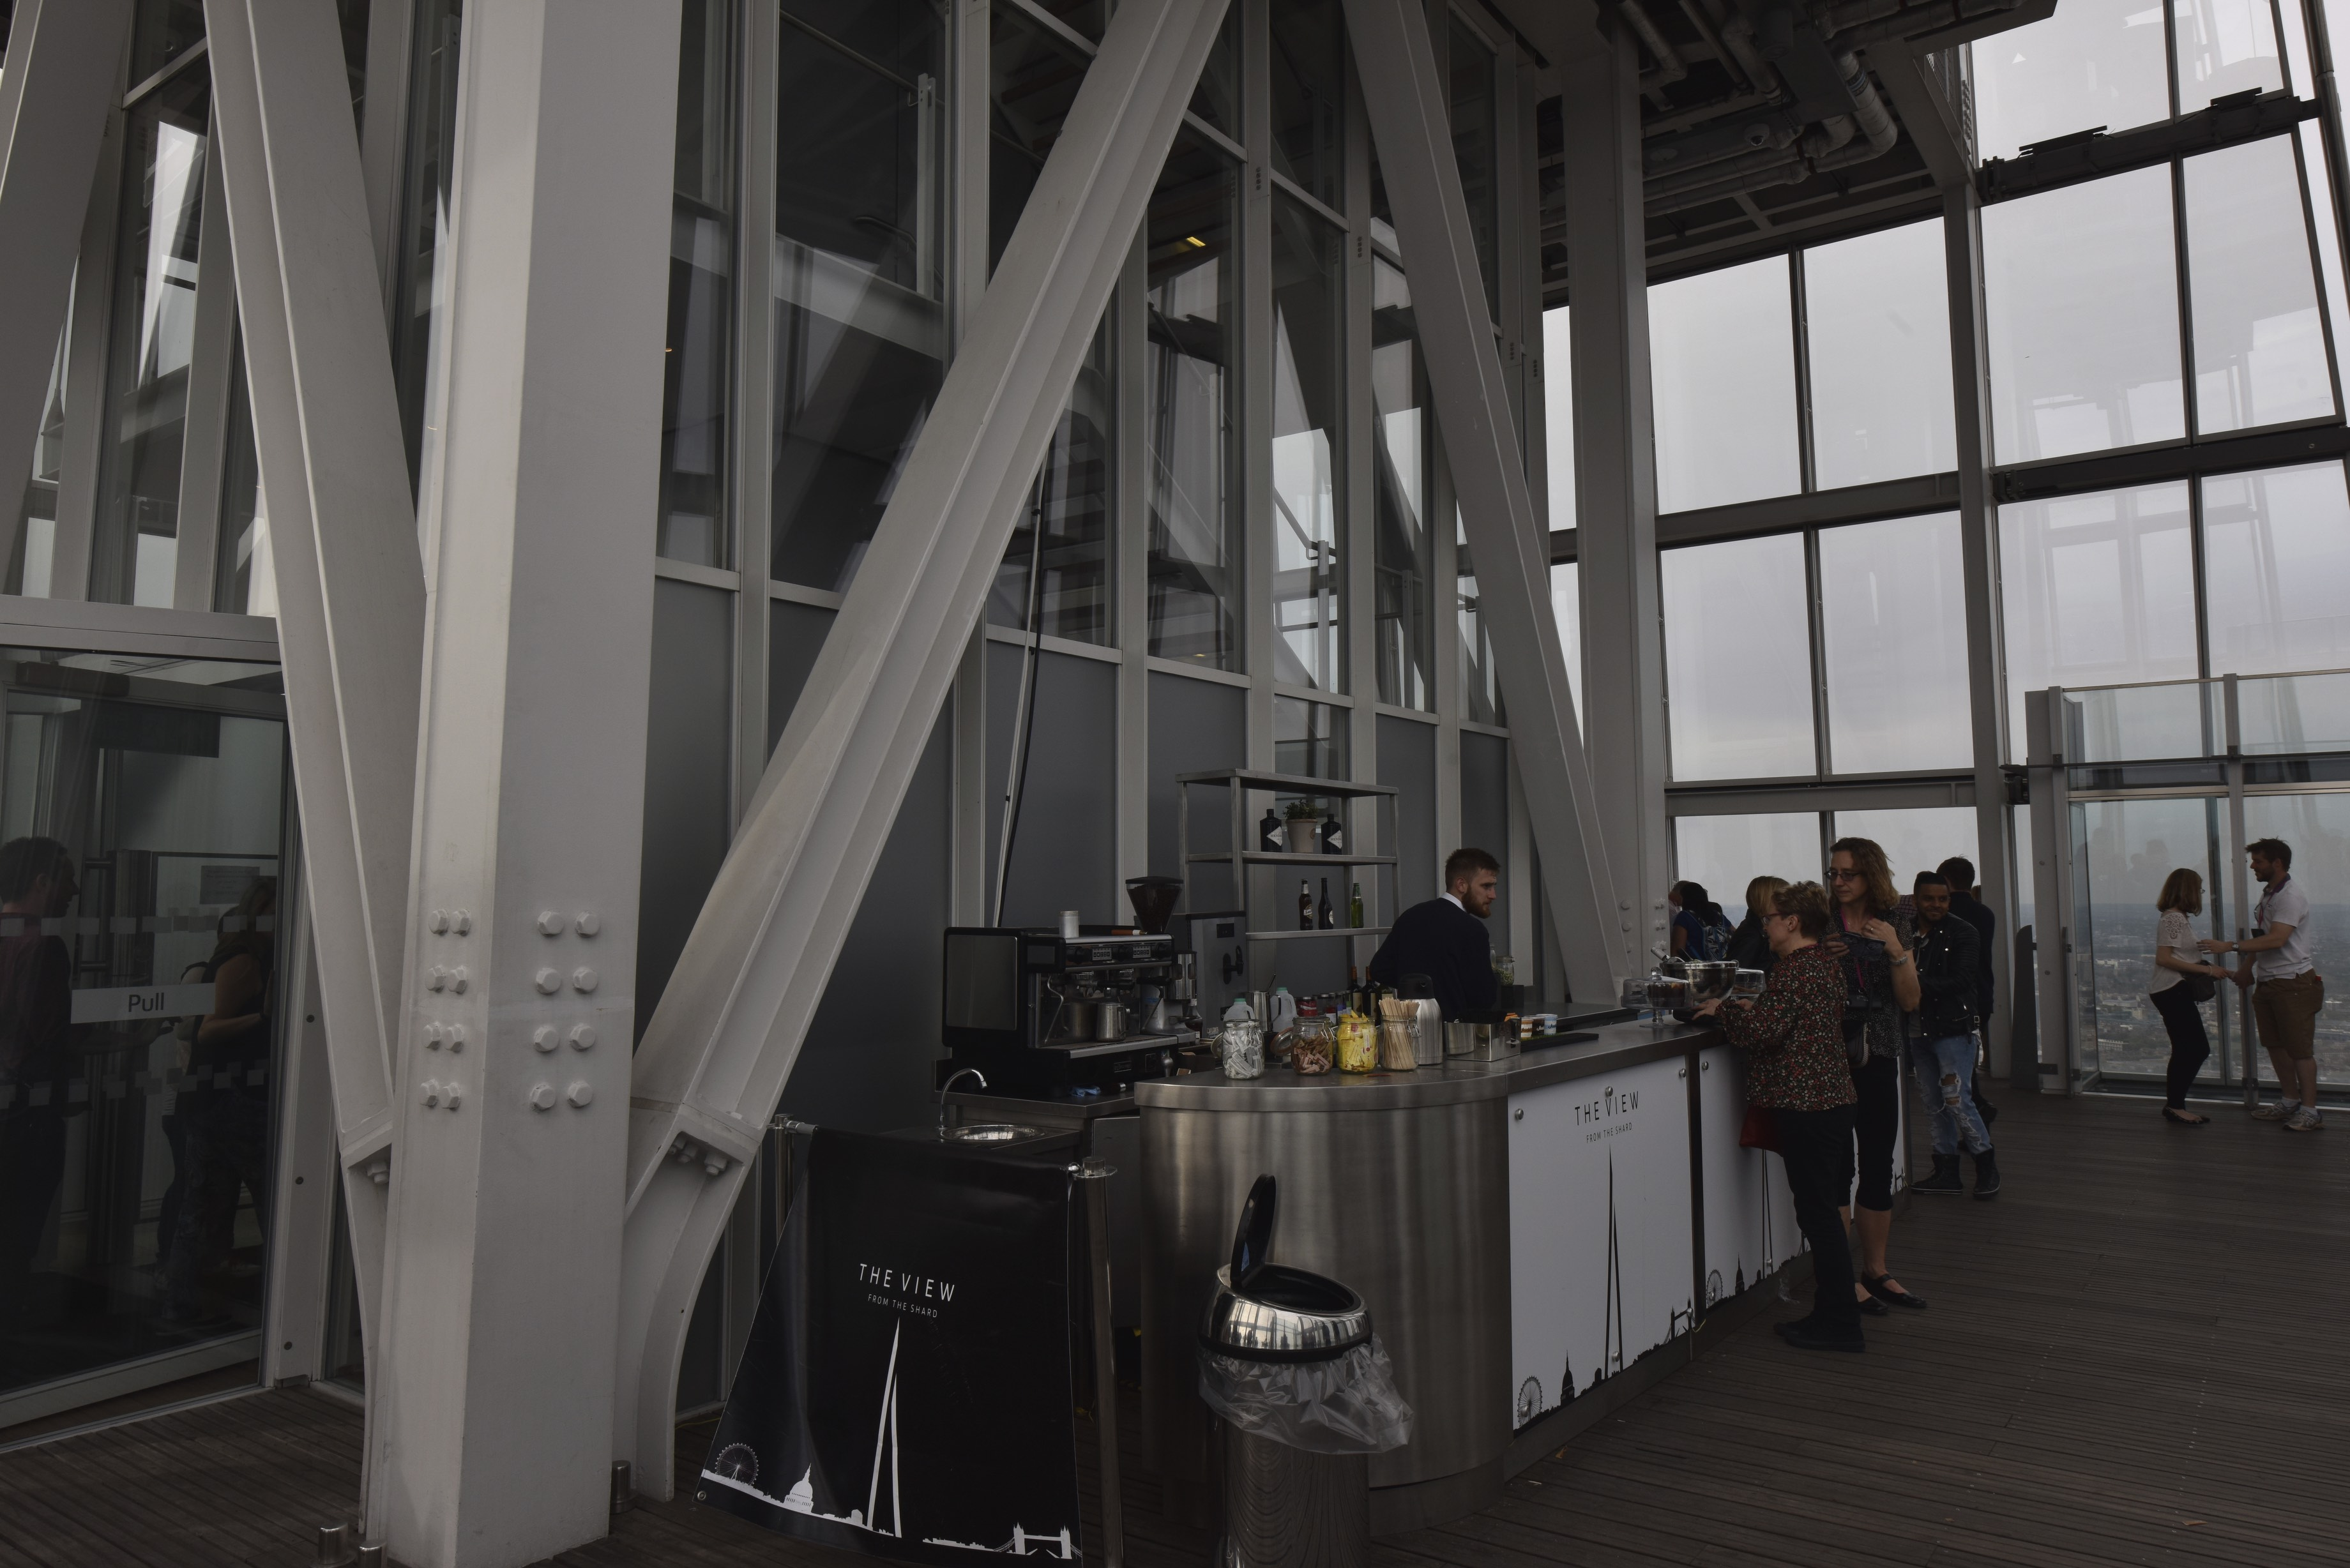 Feeling Fancy? You can have a glass of Fizz, whilst taking in the views from the Shard